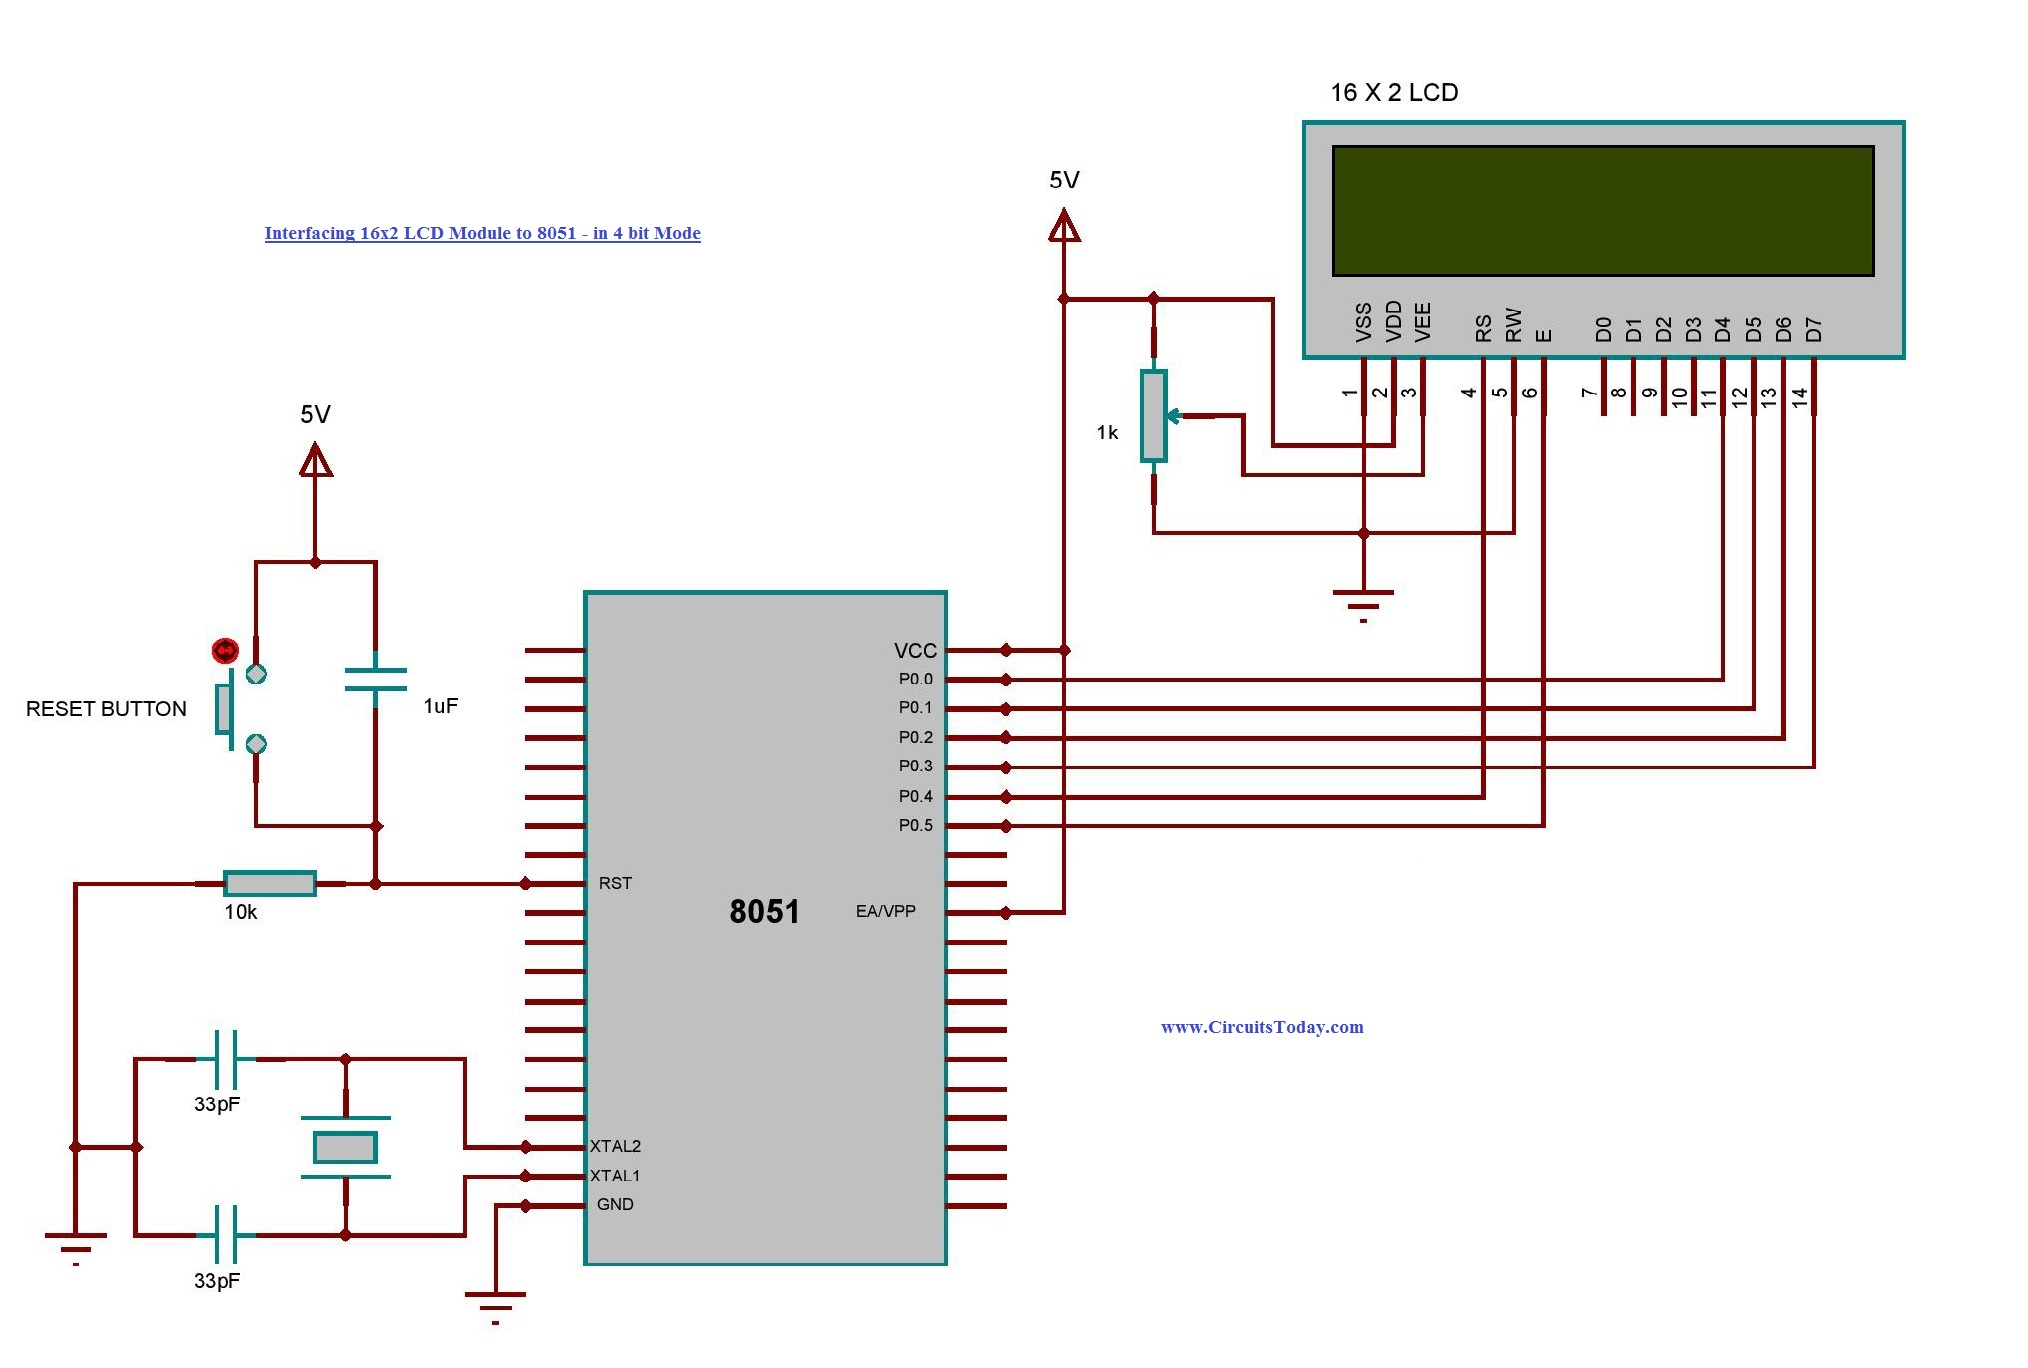 Interfacing 16x2 Lcd With 8051 Microcontroller Module Theory Digital Count Down Timer Circuit Using Pic To In 4 Bit Mode